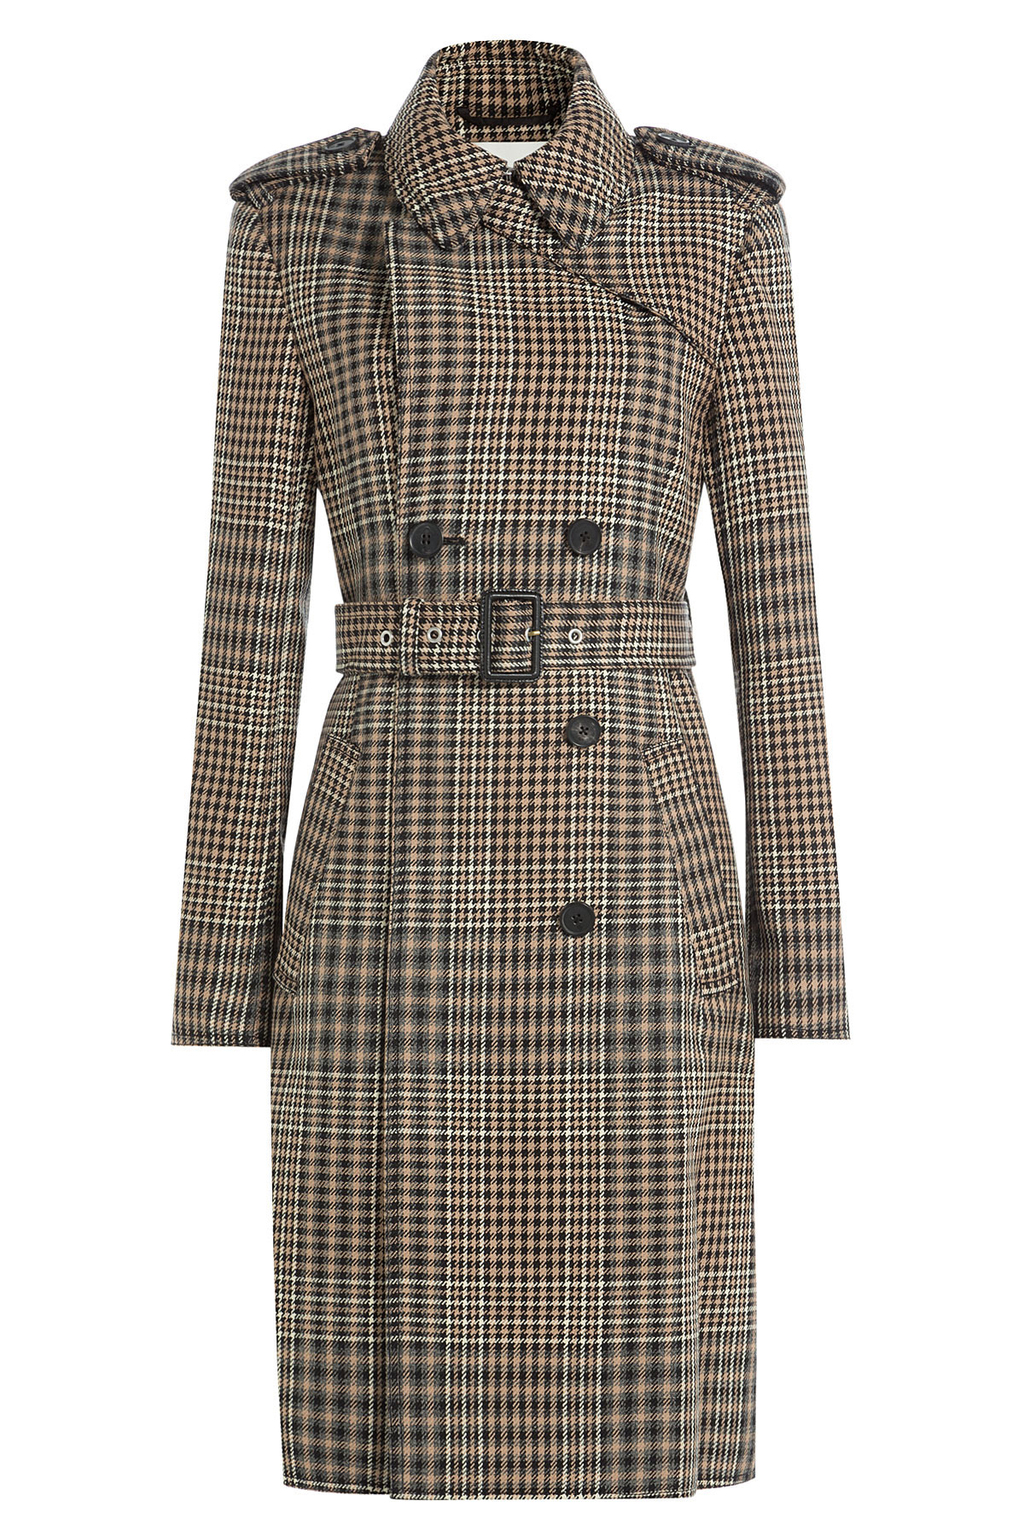 Printed Virgin Wool Trench Coat - pattern: checked/gingham; style: trench coat; length: on the knee; predominant colour: stone; secondary colour: mid grey; occasions: casual; fit: tailored/fitted; fibres: wool - 100%; collar: shirt collar/peter pan/zip with opening; waist detail: belted waist/tie at waist/drawstring; sleeve length: long sleeve; sleeve style: standard; collar break: high; pattern type: fabric; texture group: woven bulky/heavy; multicoloured: multicoloured; season: a/w 2016; wardrobe: highlight